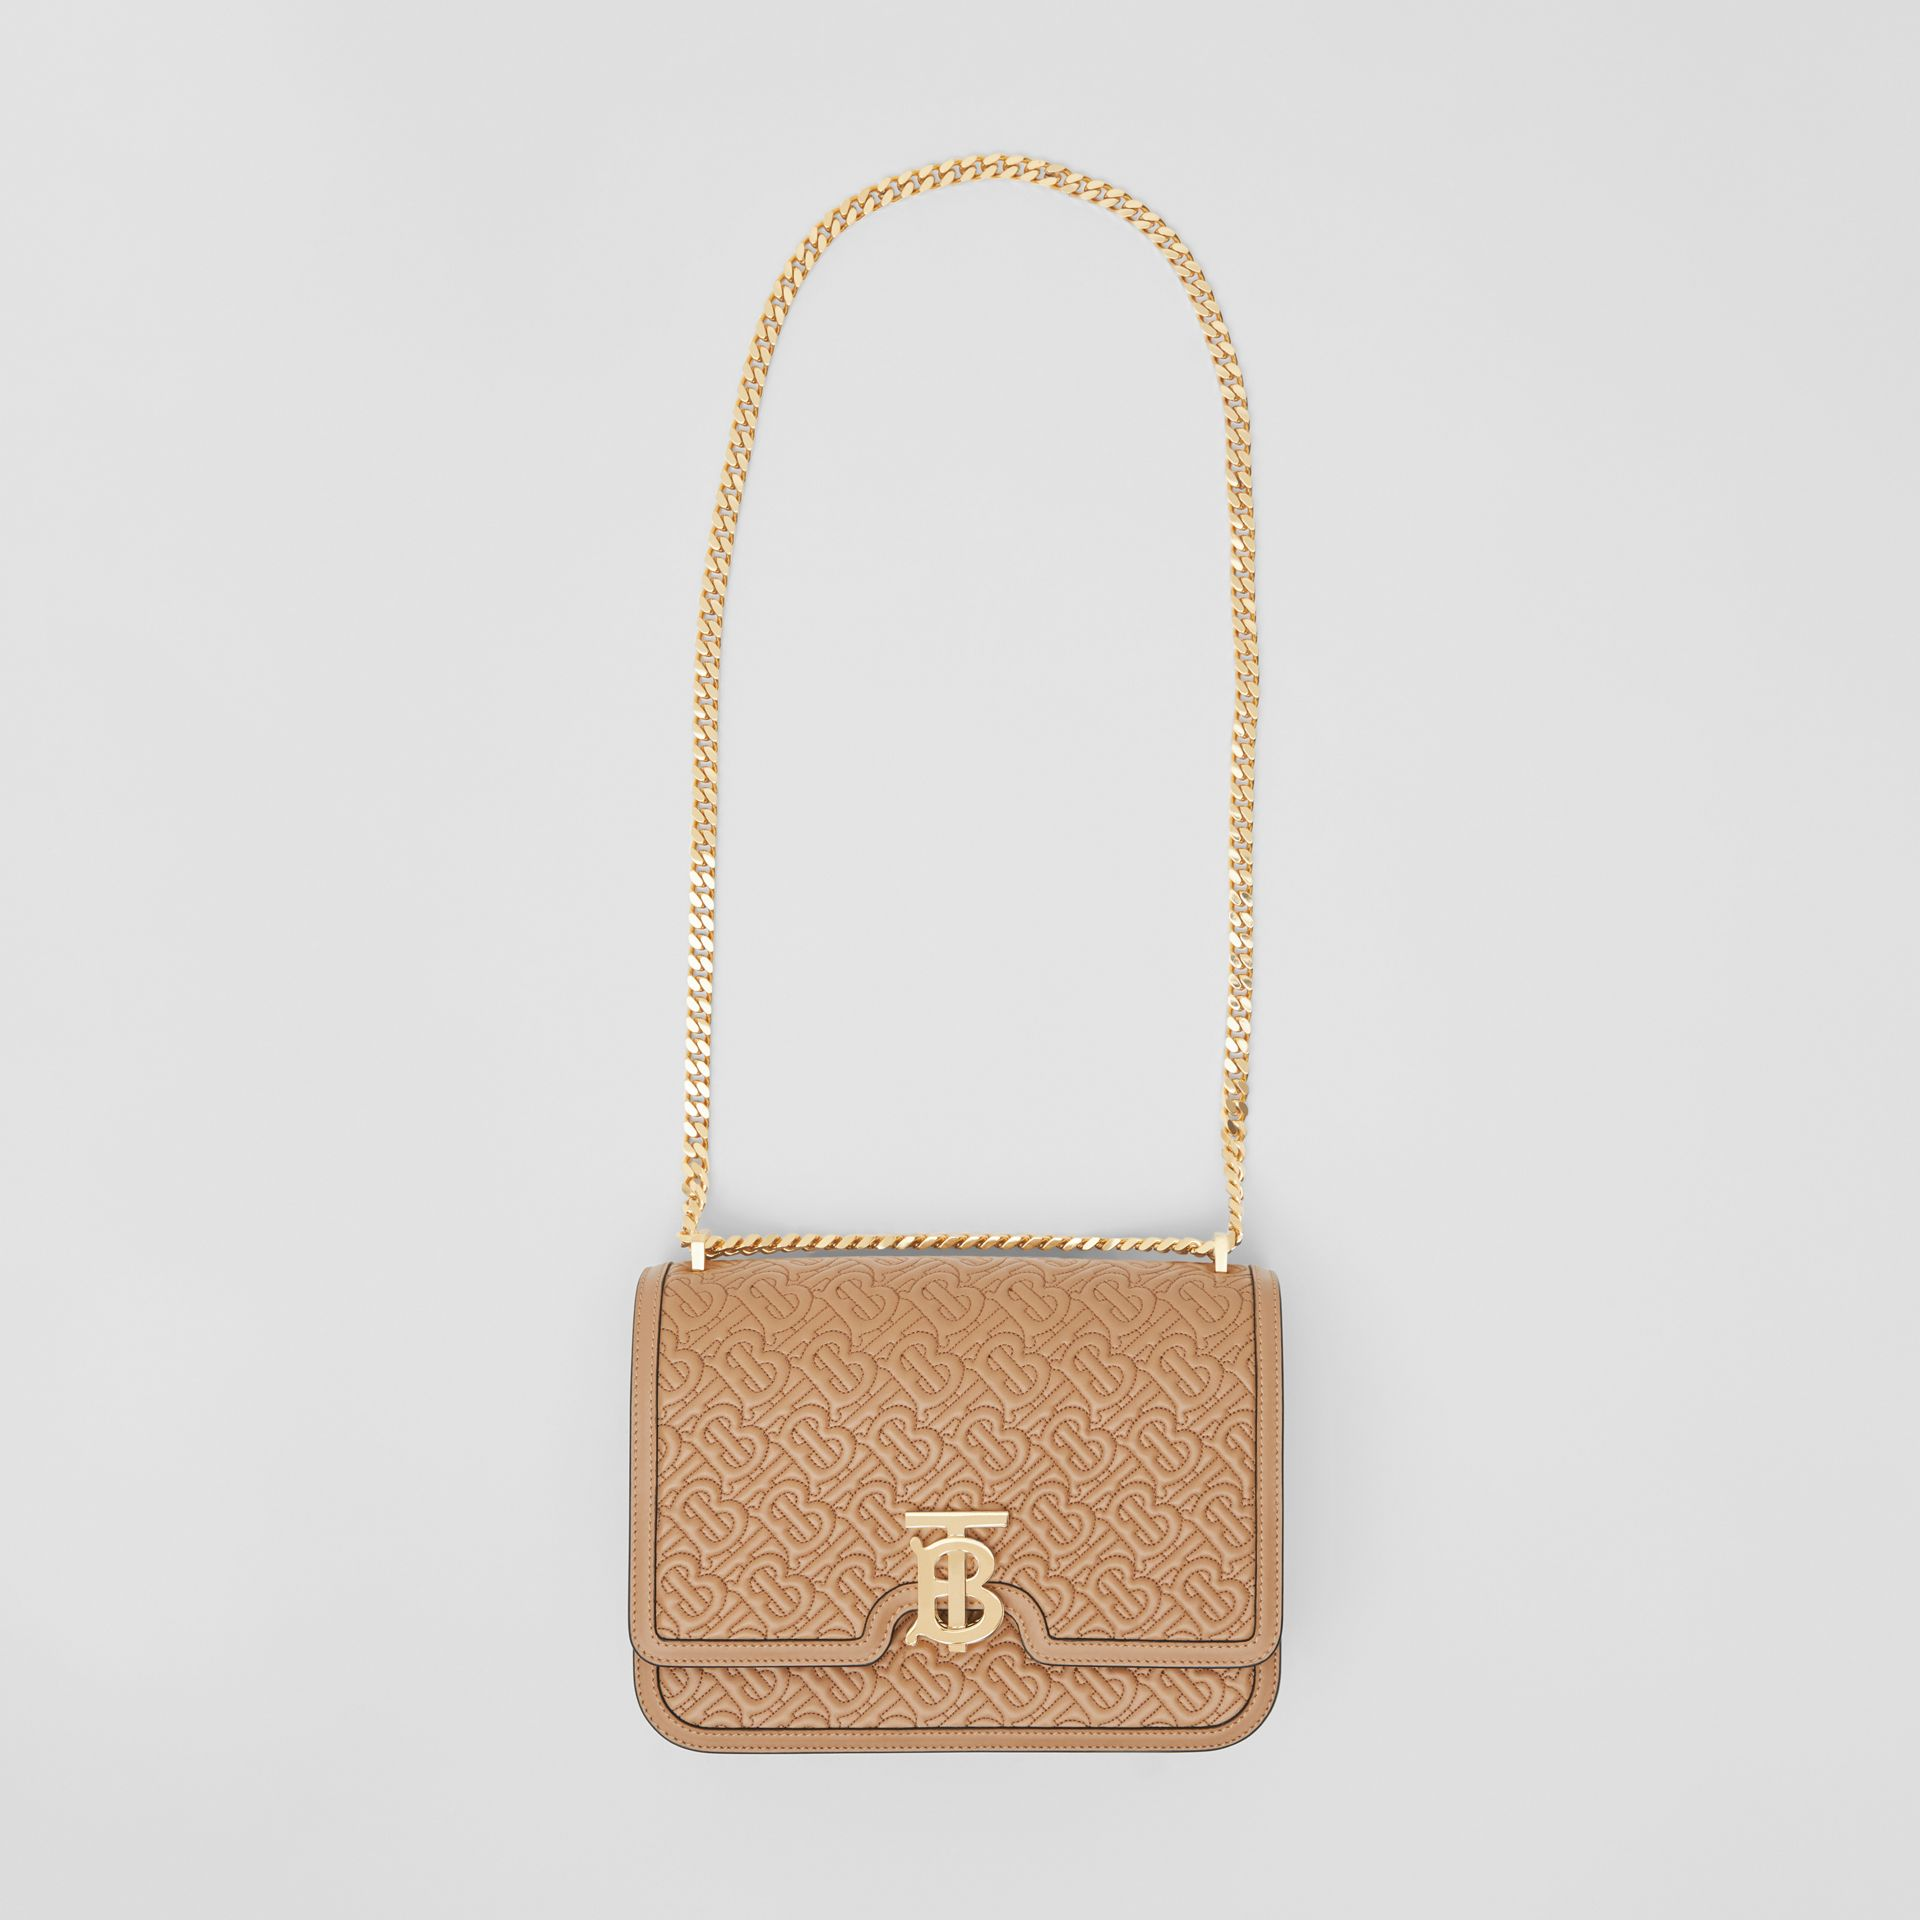 Medium Quilted Monogram Lambskin TB Bag in Honey - Women | Burberry - gallery image 3